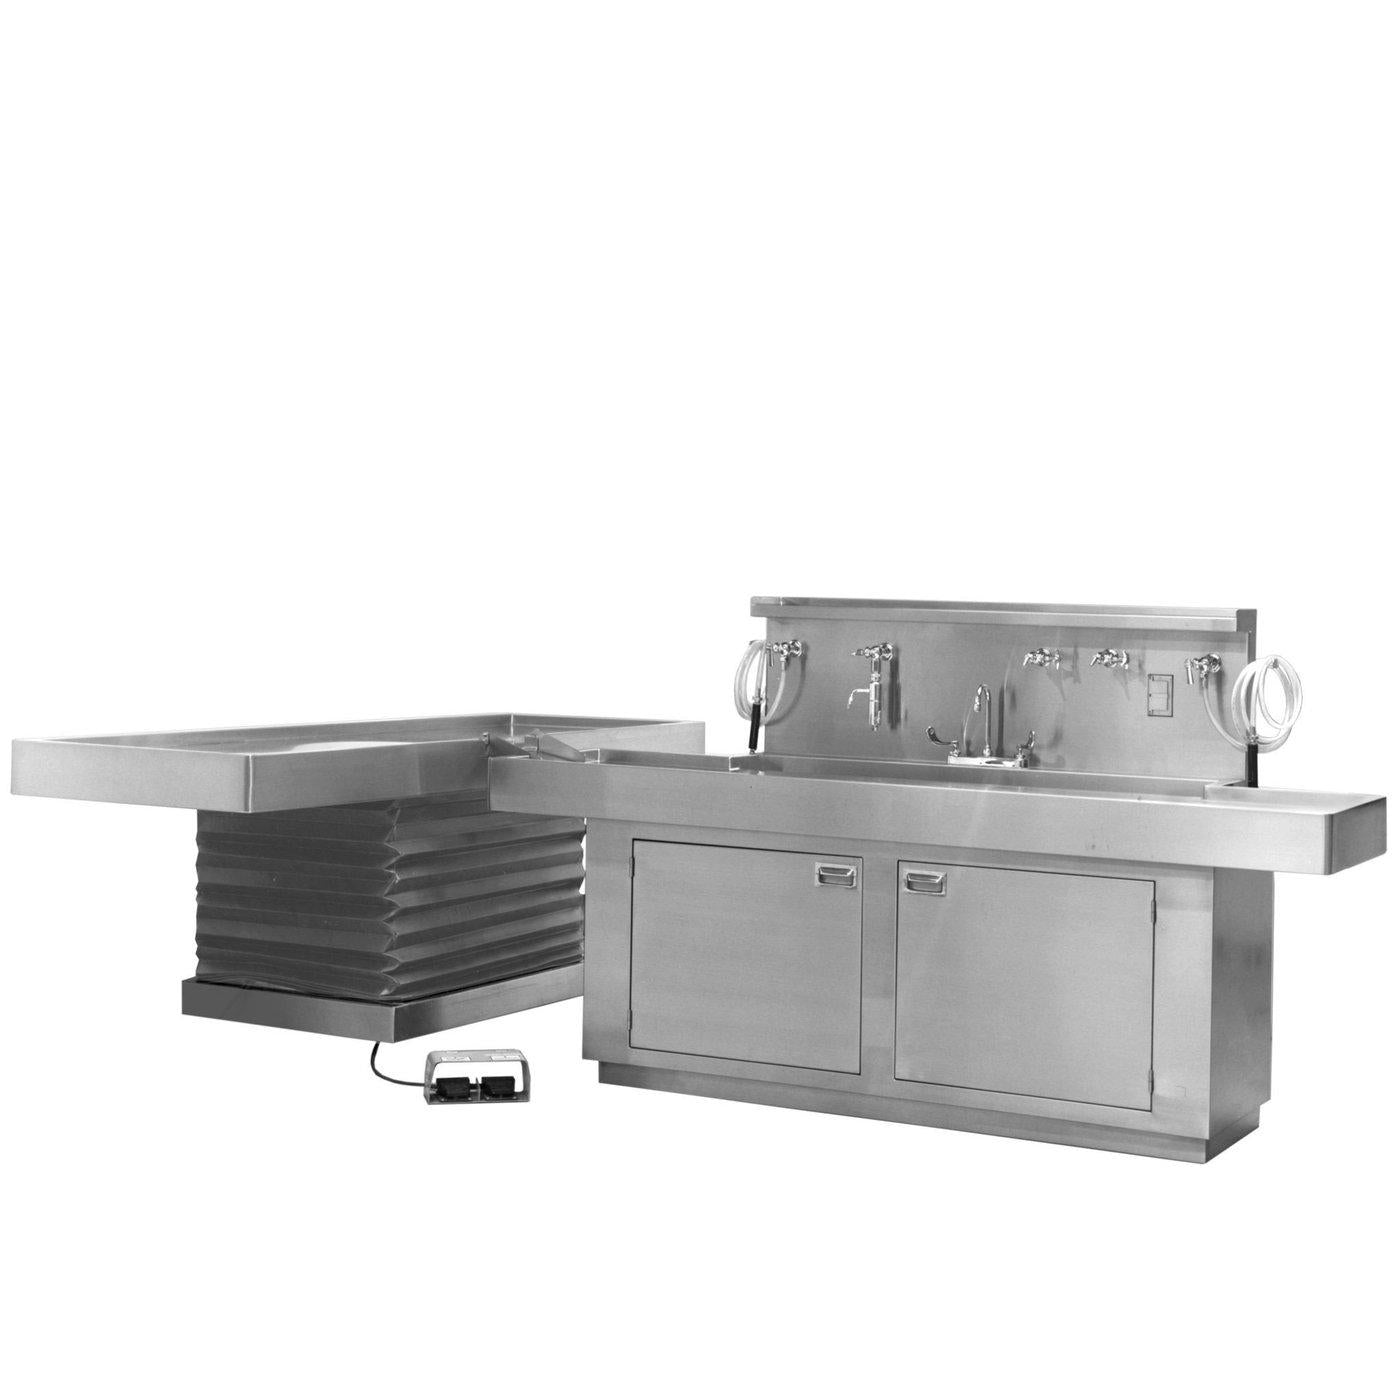 T-Shaped Large Necropsy Table-Necropsy Dissection Tables-Mortech Manufacturing Company Inc. Quality Stainless Steel Autopsy, Morgue, Funeral Home, Necropsy, Veterinary / Anatomy, Dissection Equipment and Accessories